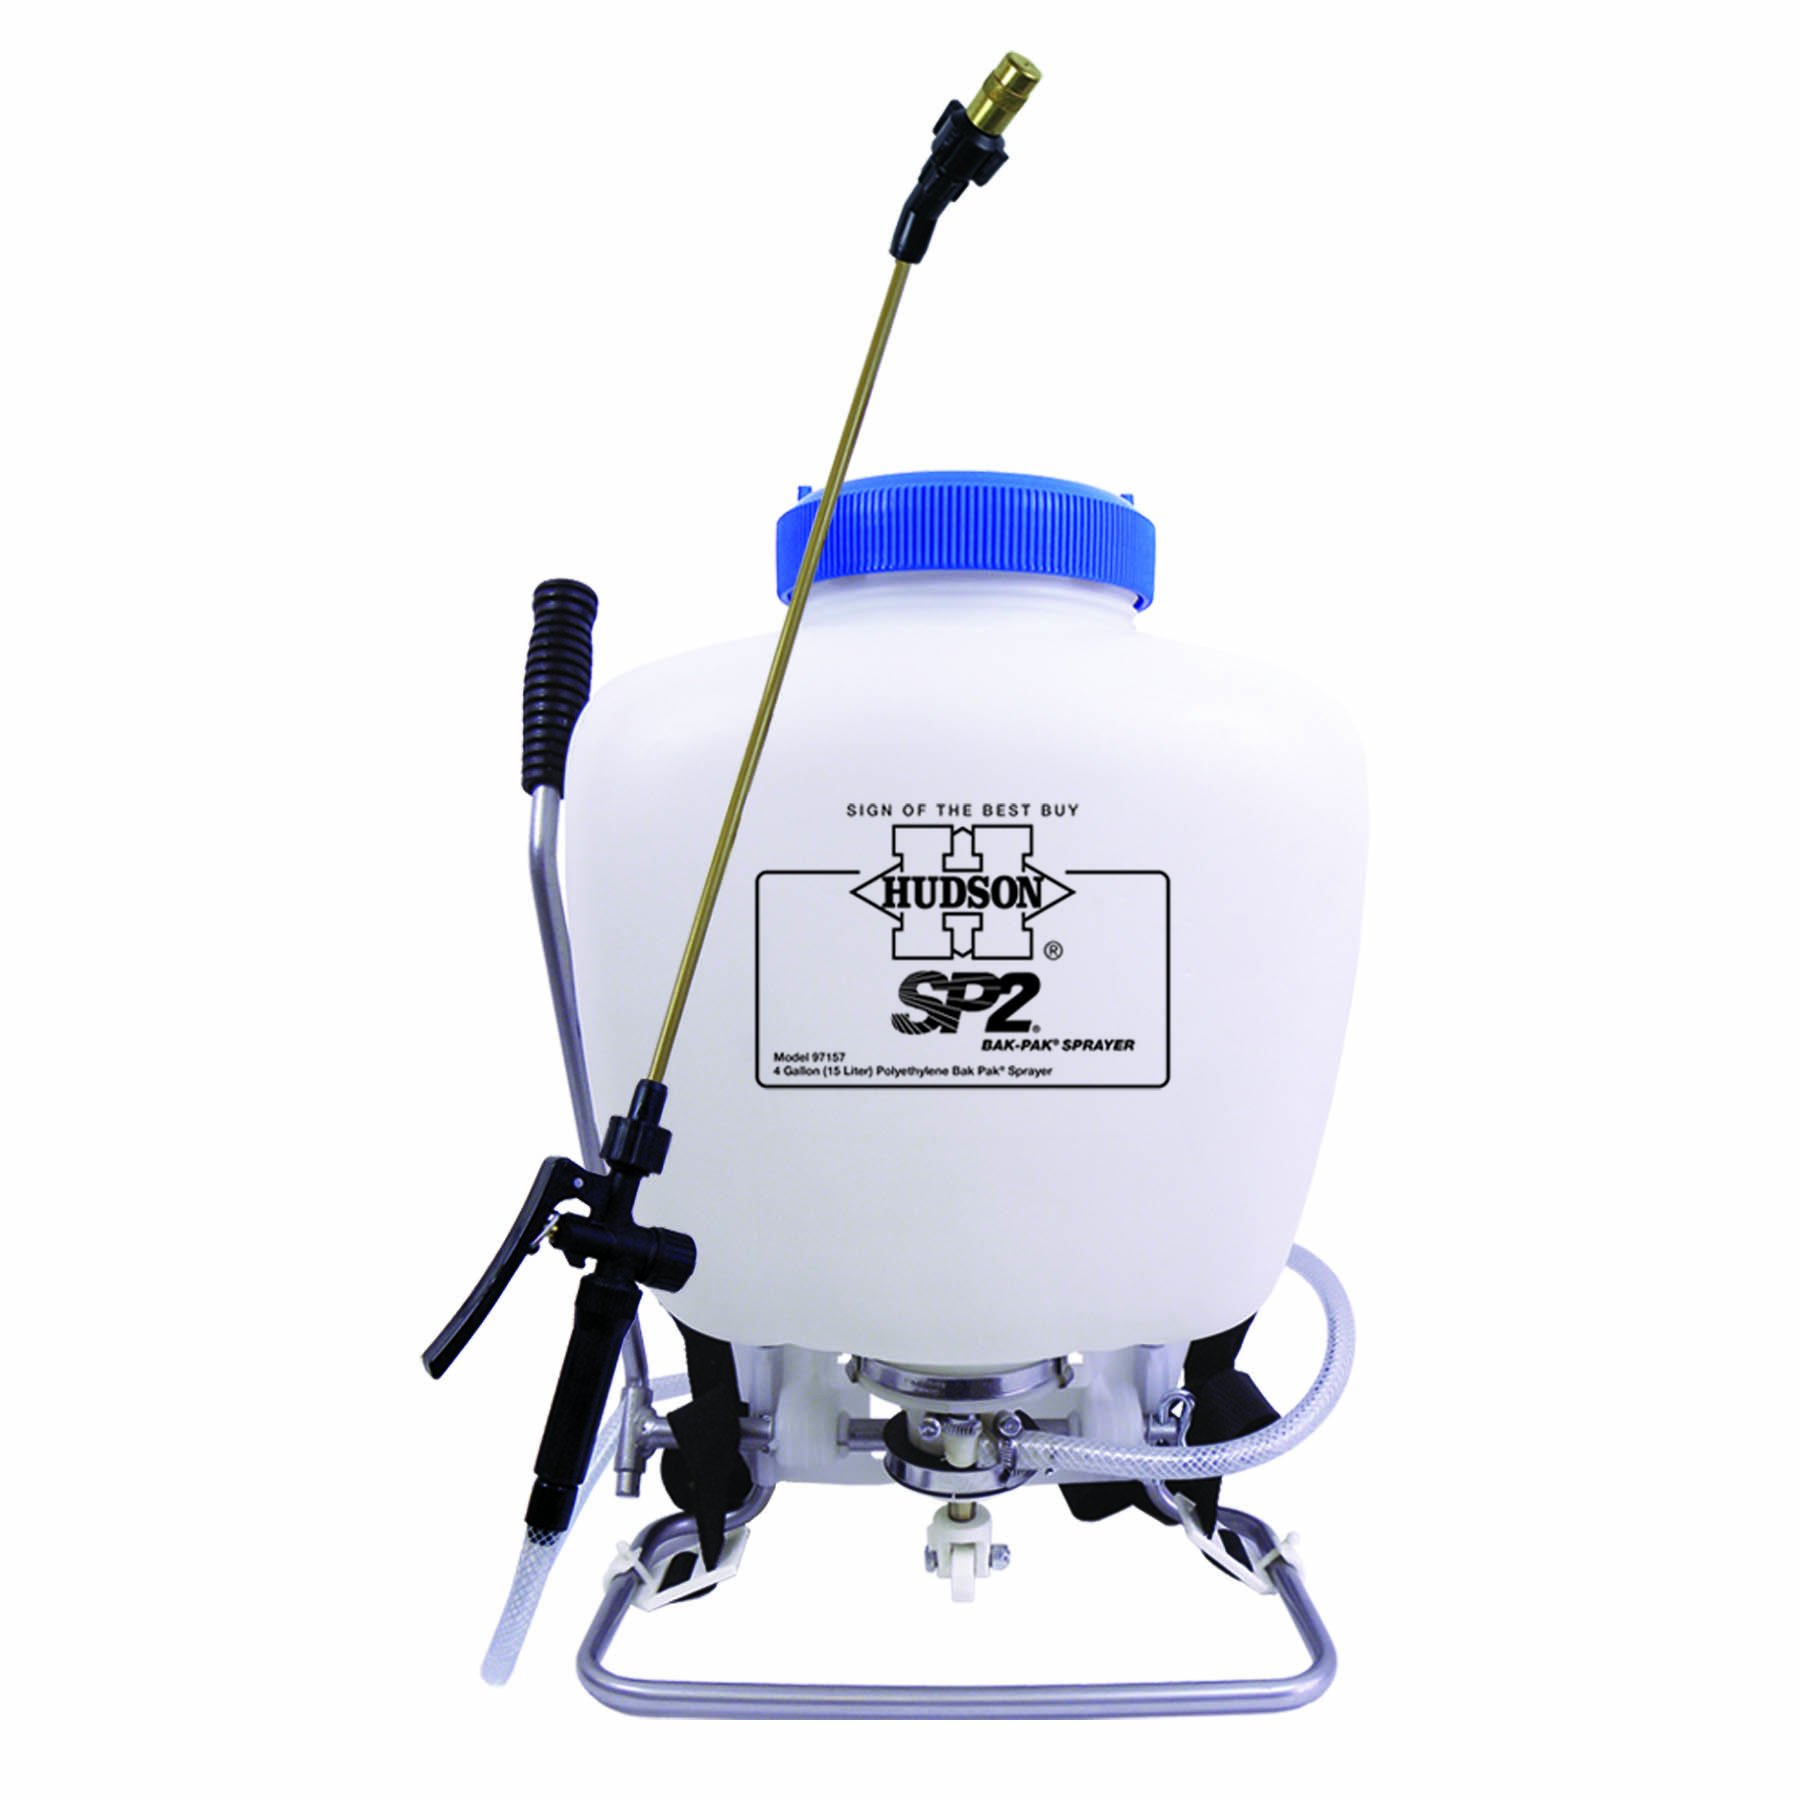 Hudson 97157 SP2 Piston Pump Bak-Pak Sprayer by HD Hudson